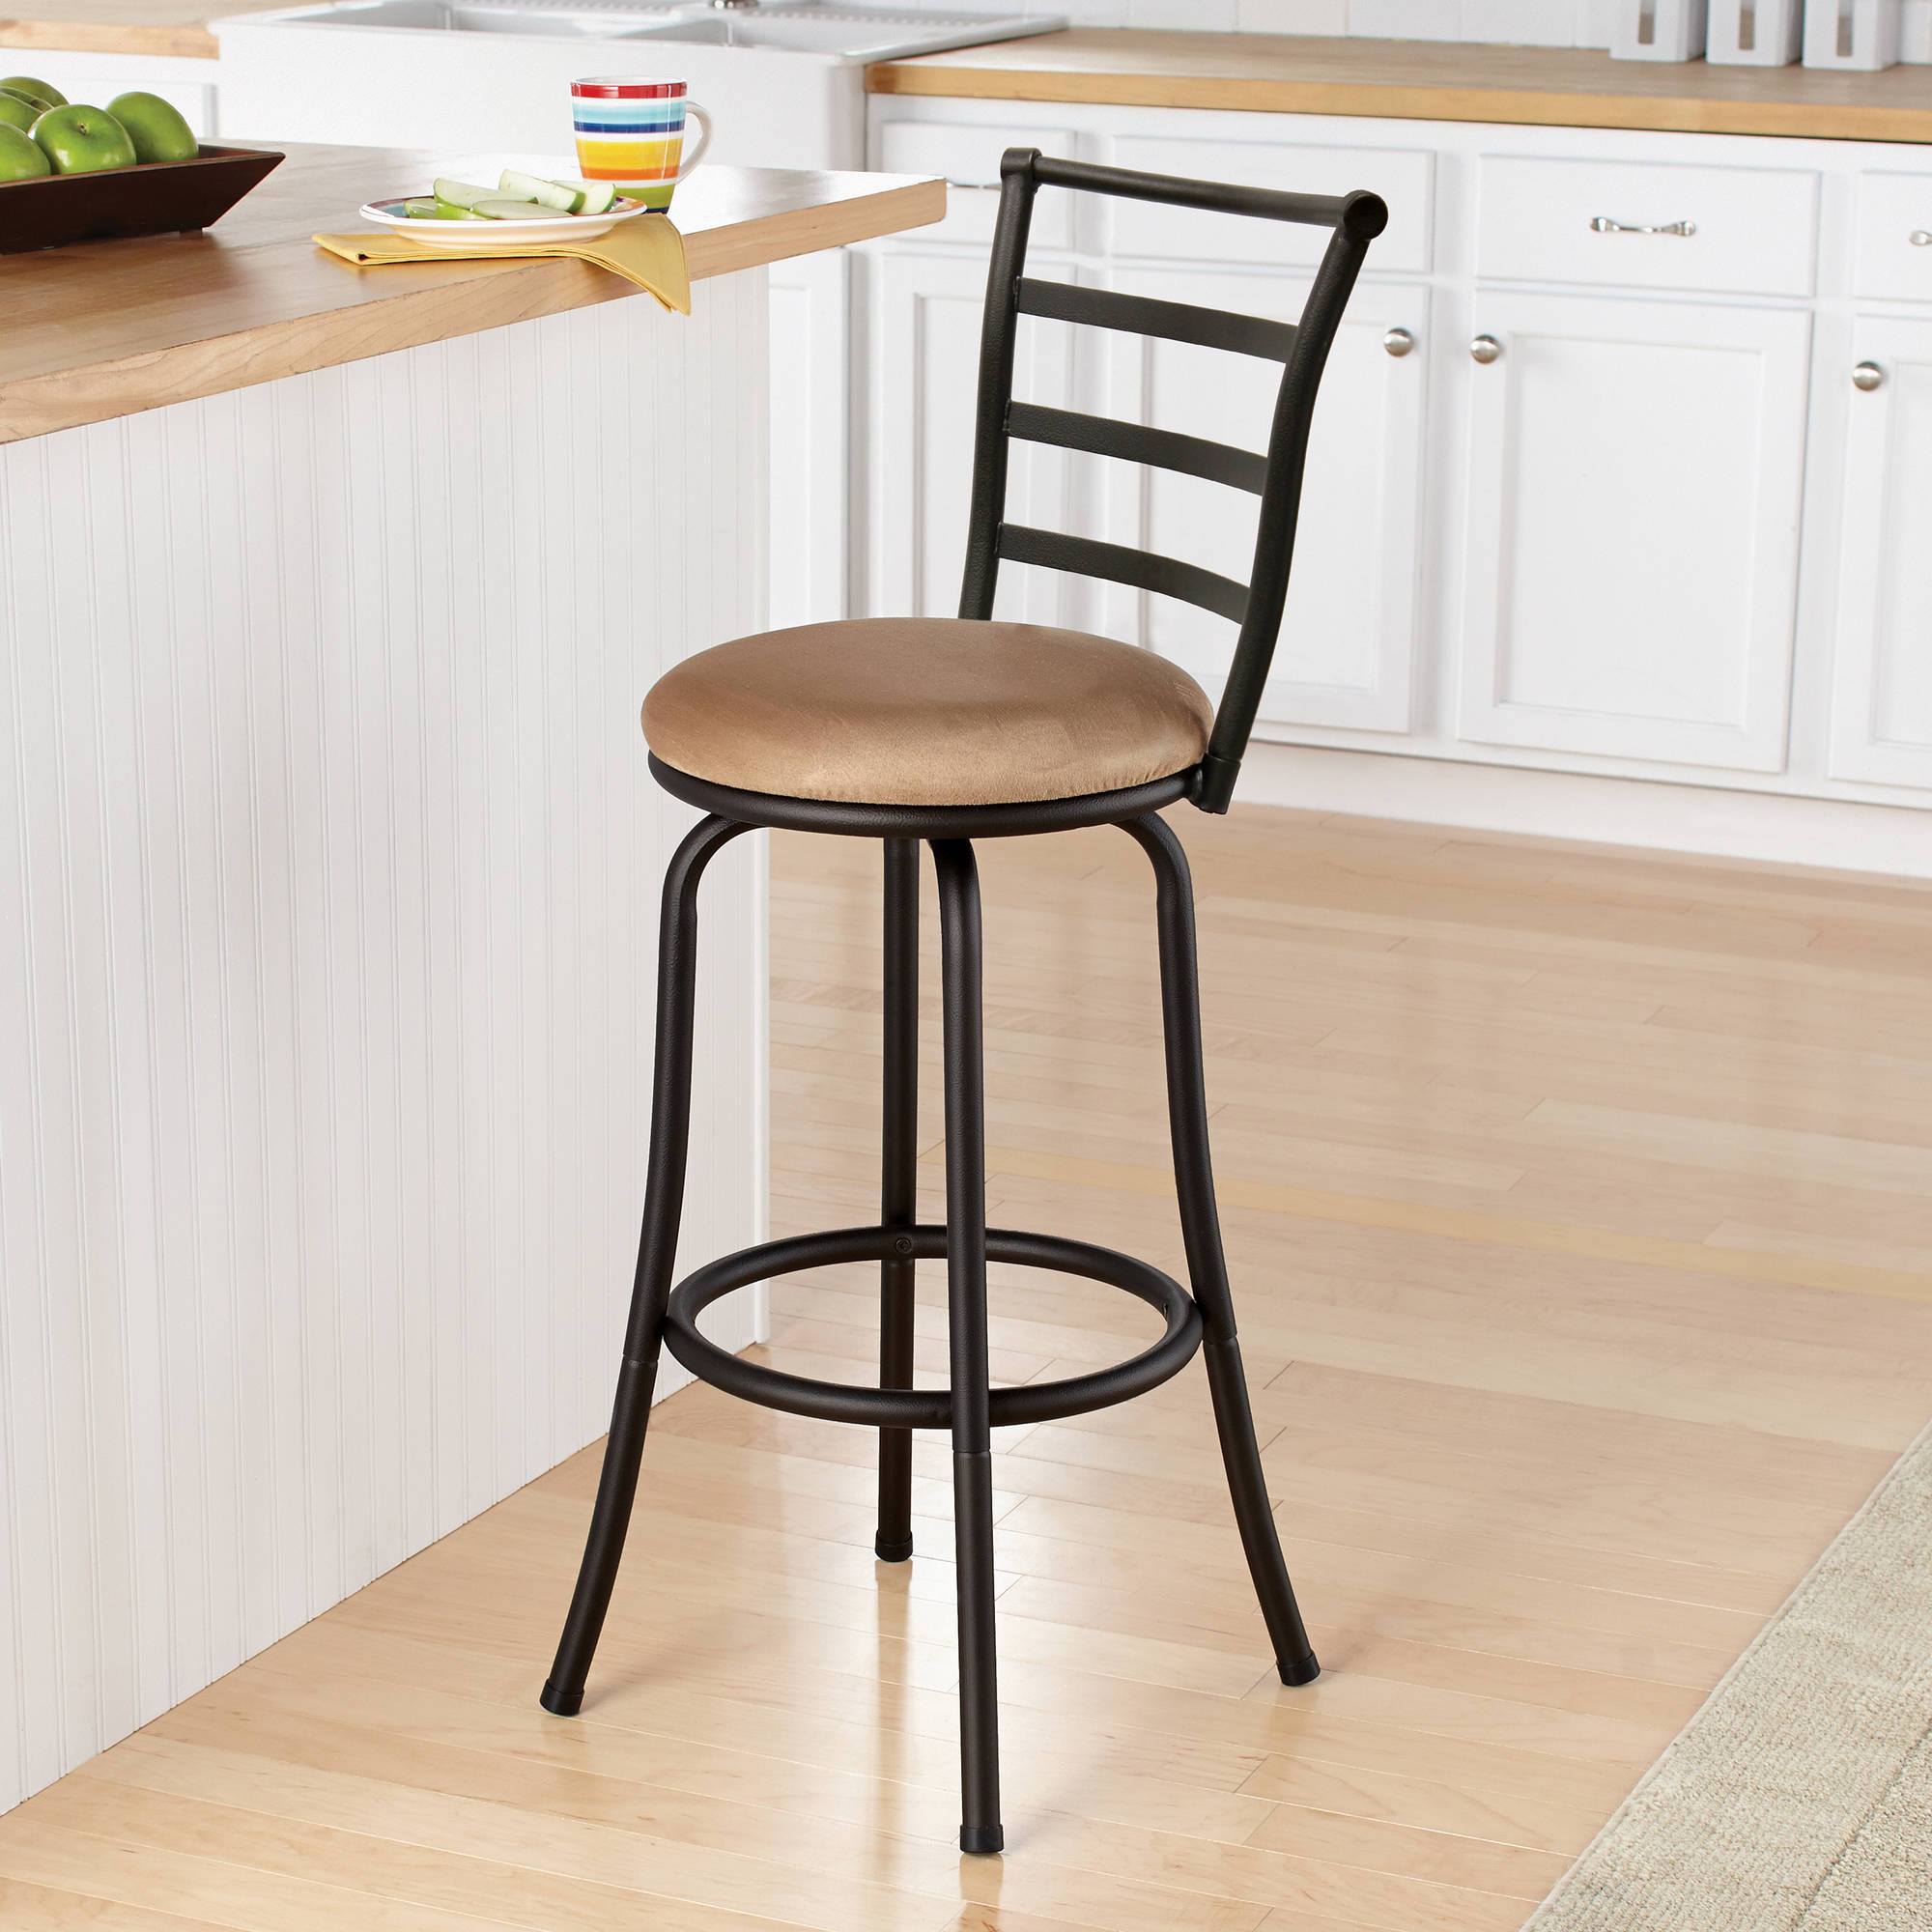 Linon Allure Bar Stools